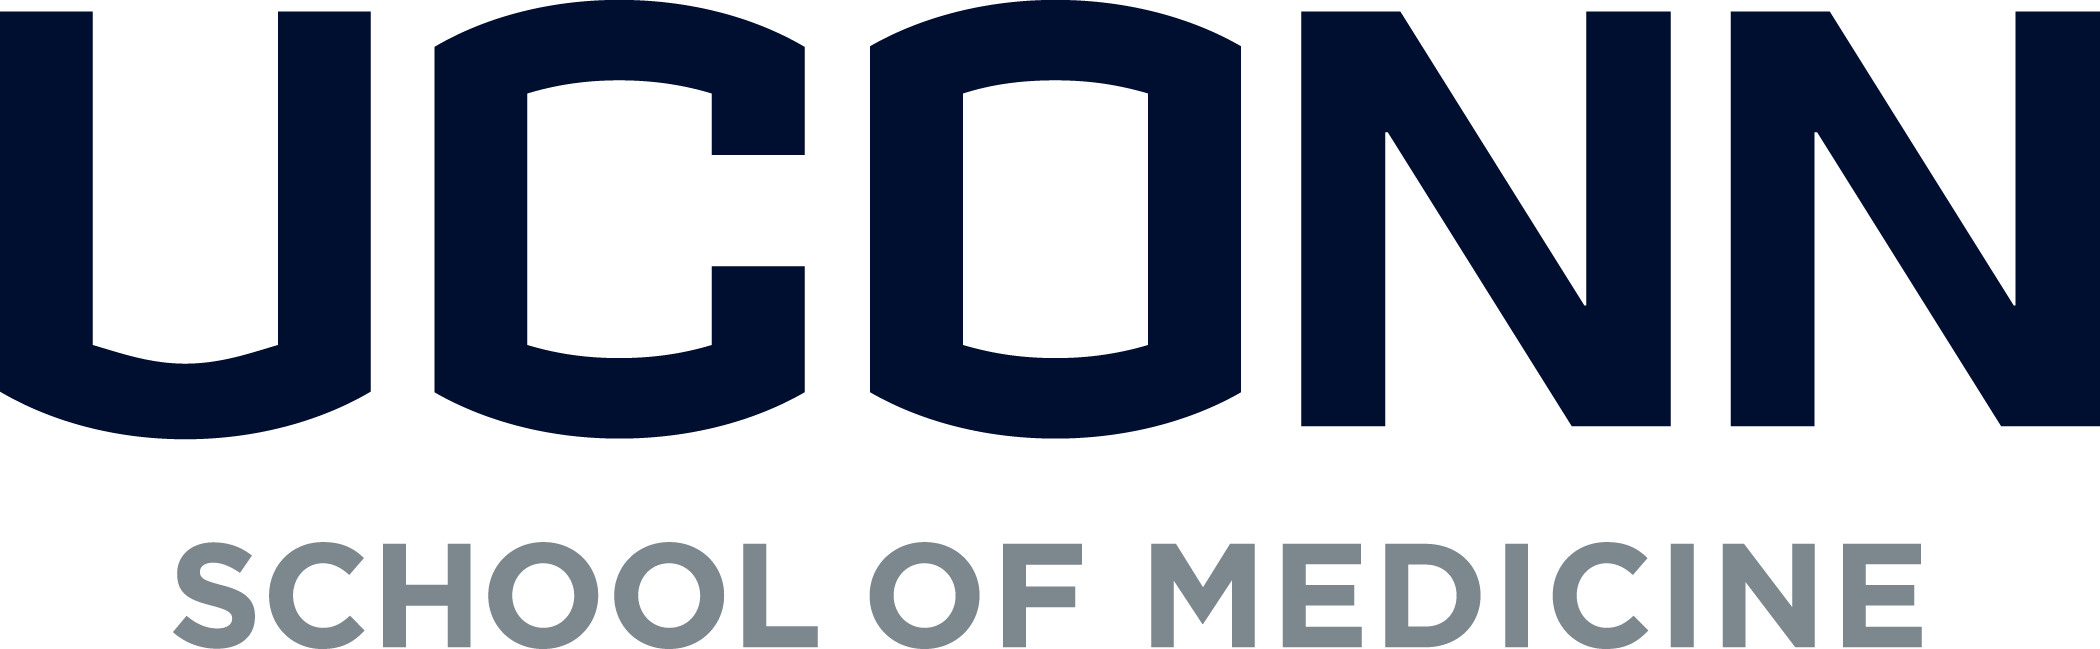 UConn School of Medicine Wordmark